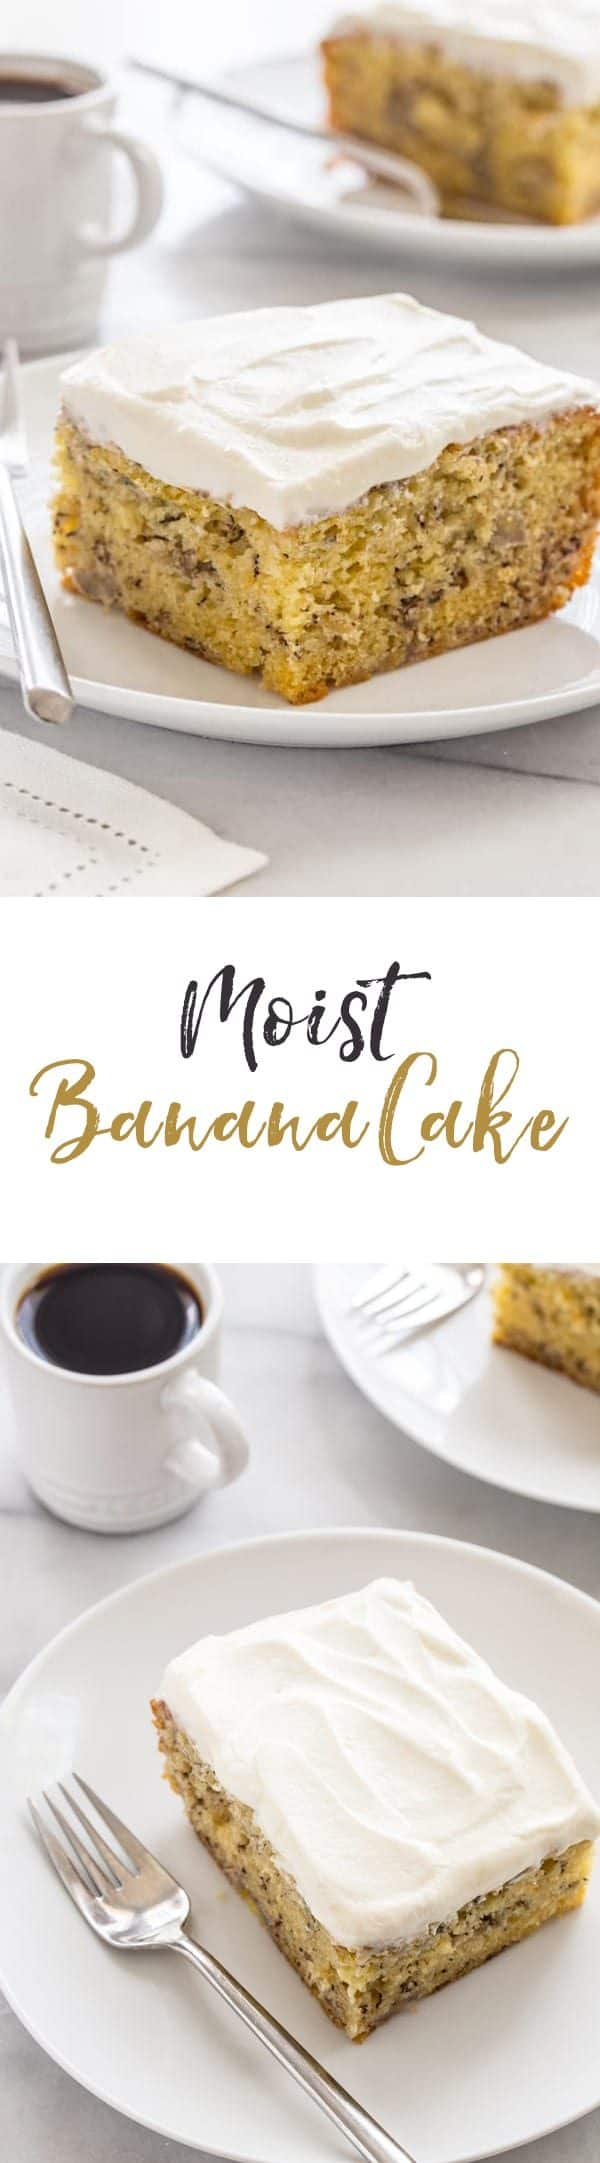 Moist Banana Cake that's good for breakfast or an afternoon pick-me-up. Grab a cup of coffee or tea and dig in!